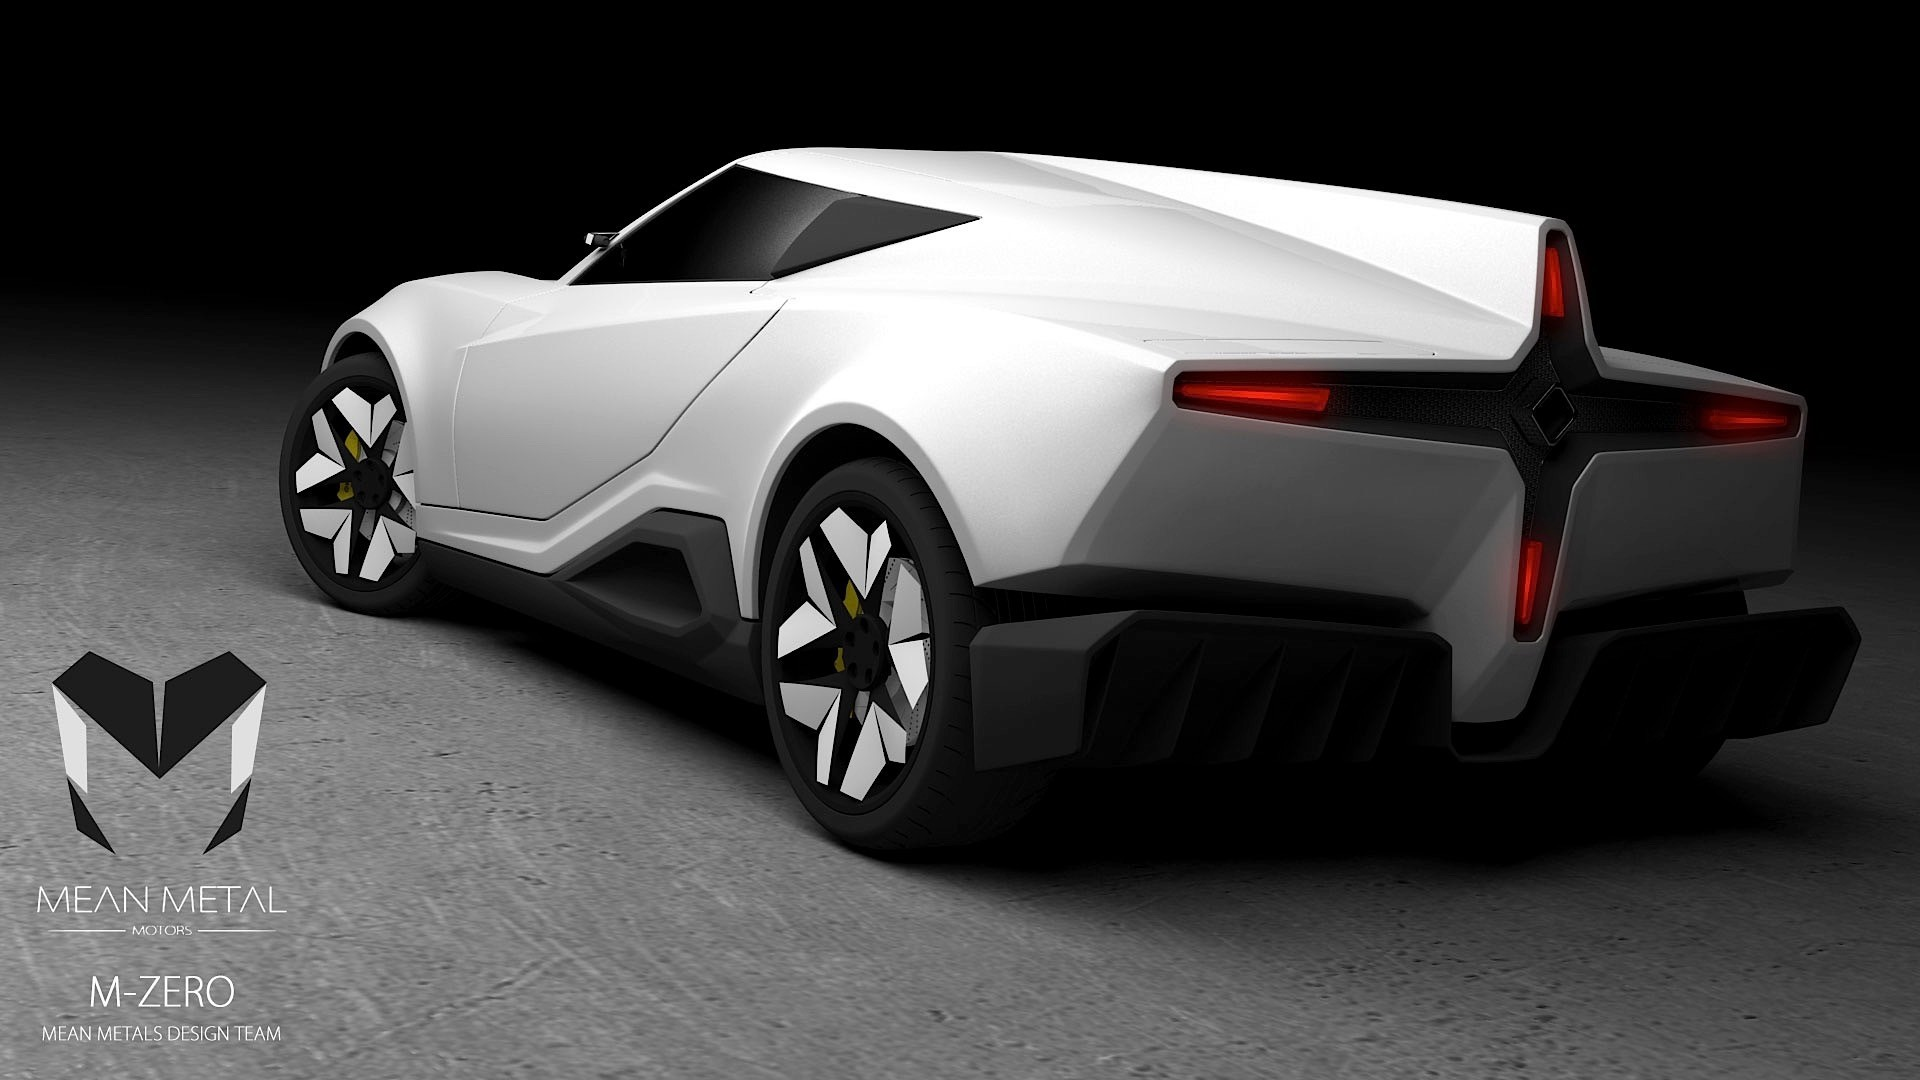 M Zero Is India S First Supercar But It Needs 7 Million To Become Reality Autoevolution